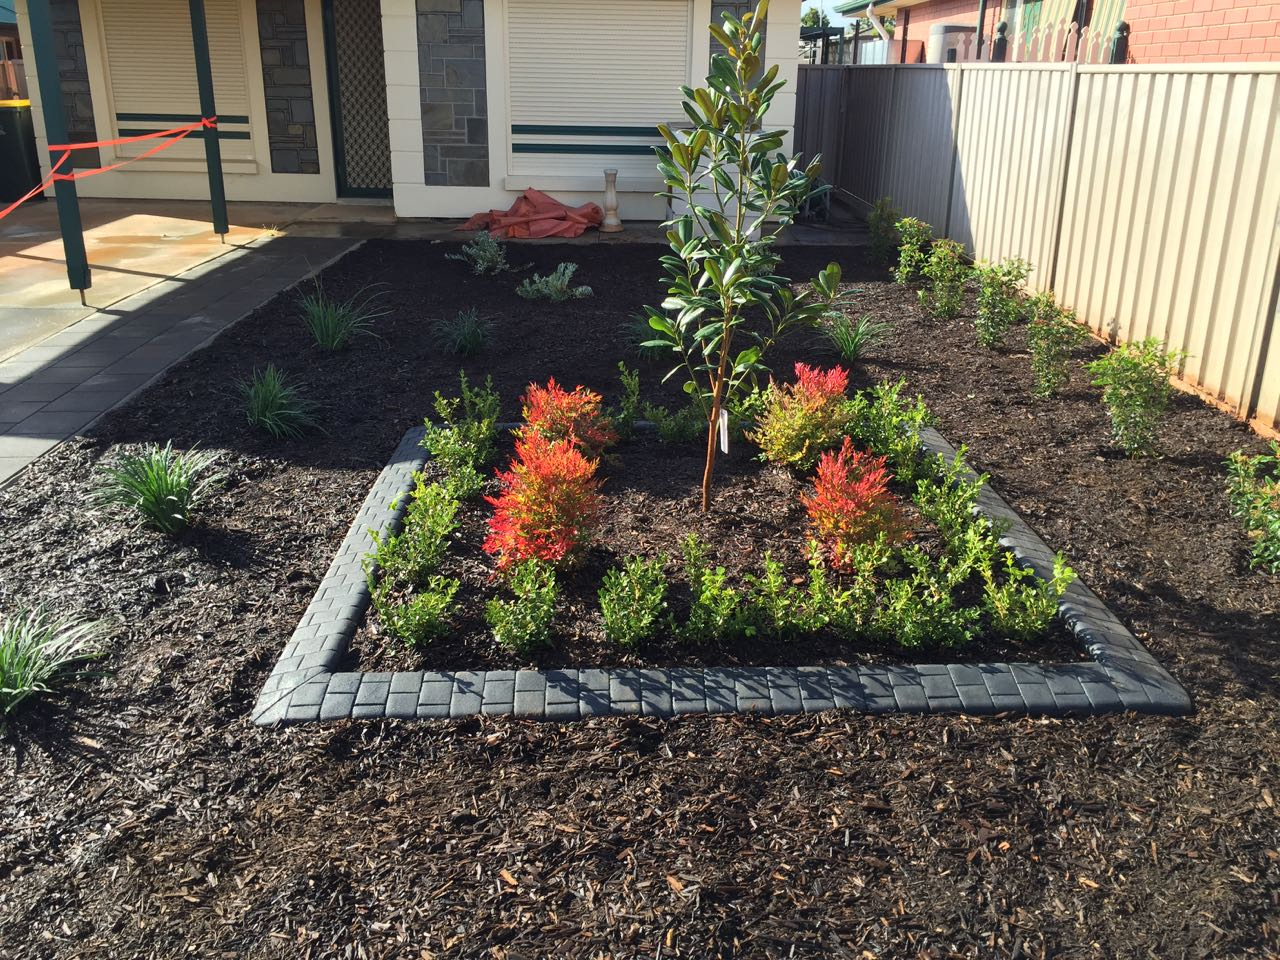 Craigmore - Beautifully Landscaped Front Yard With Leaf Mulch